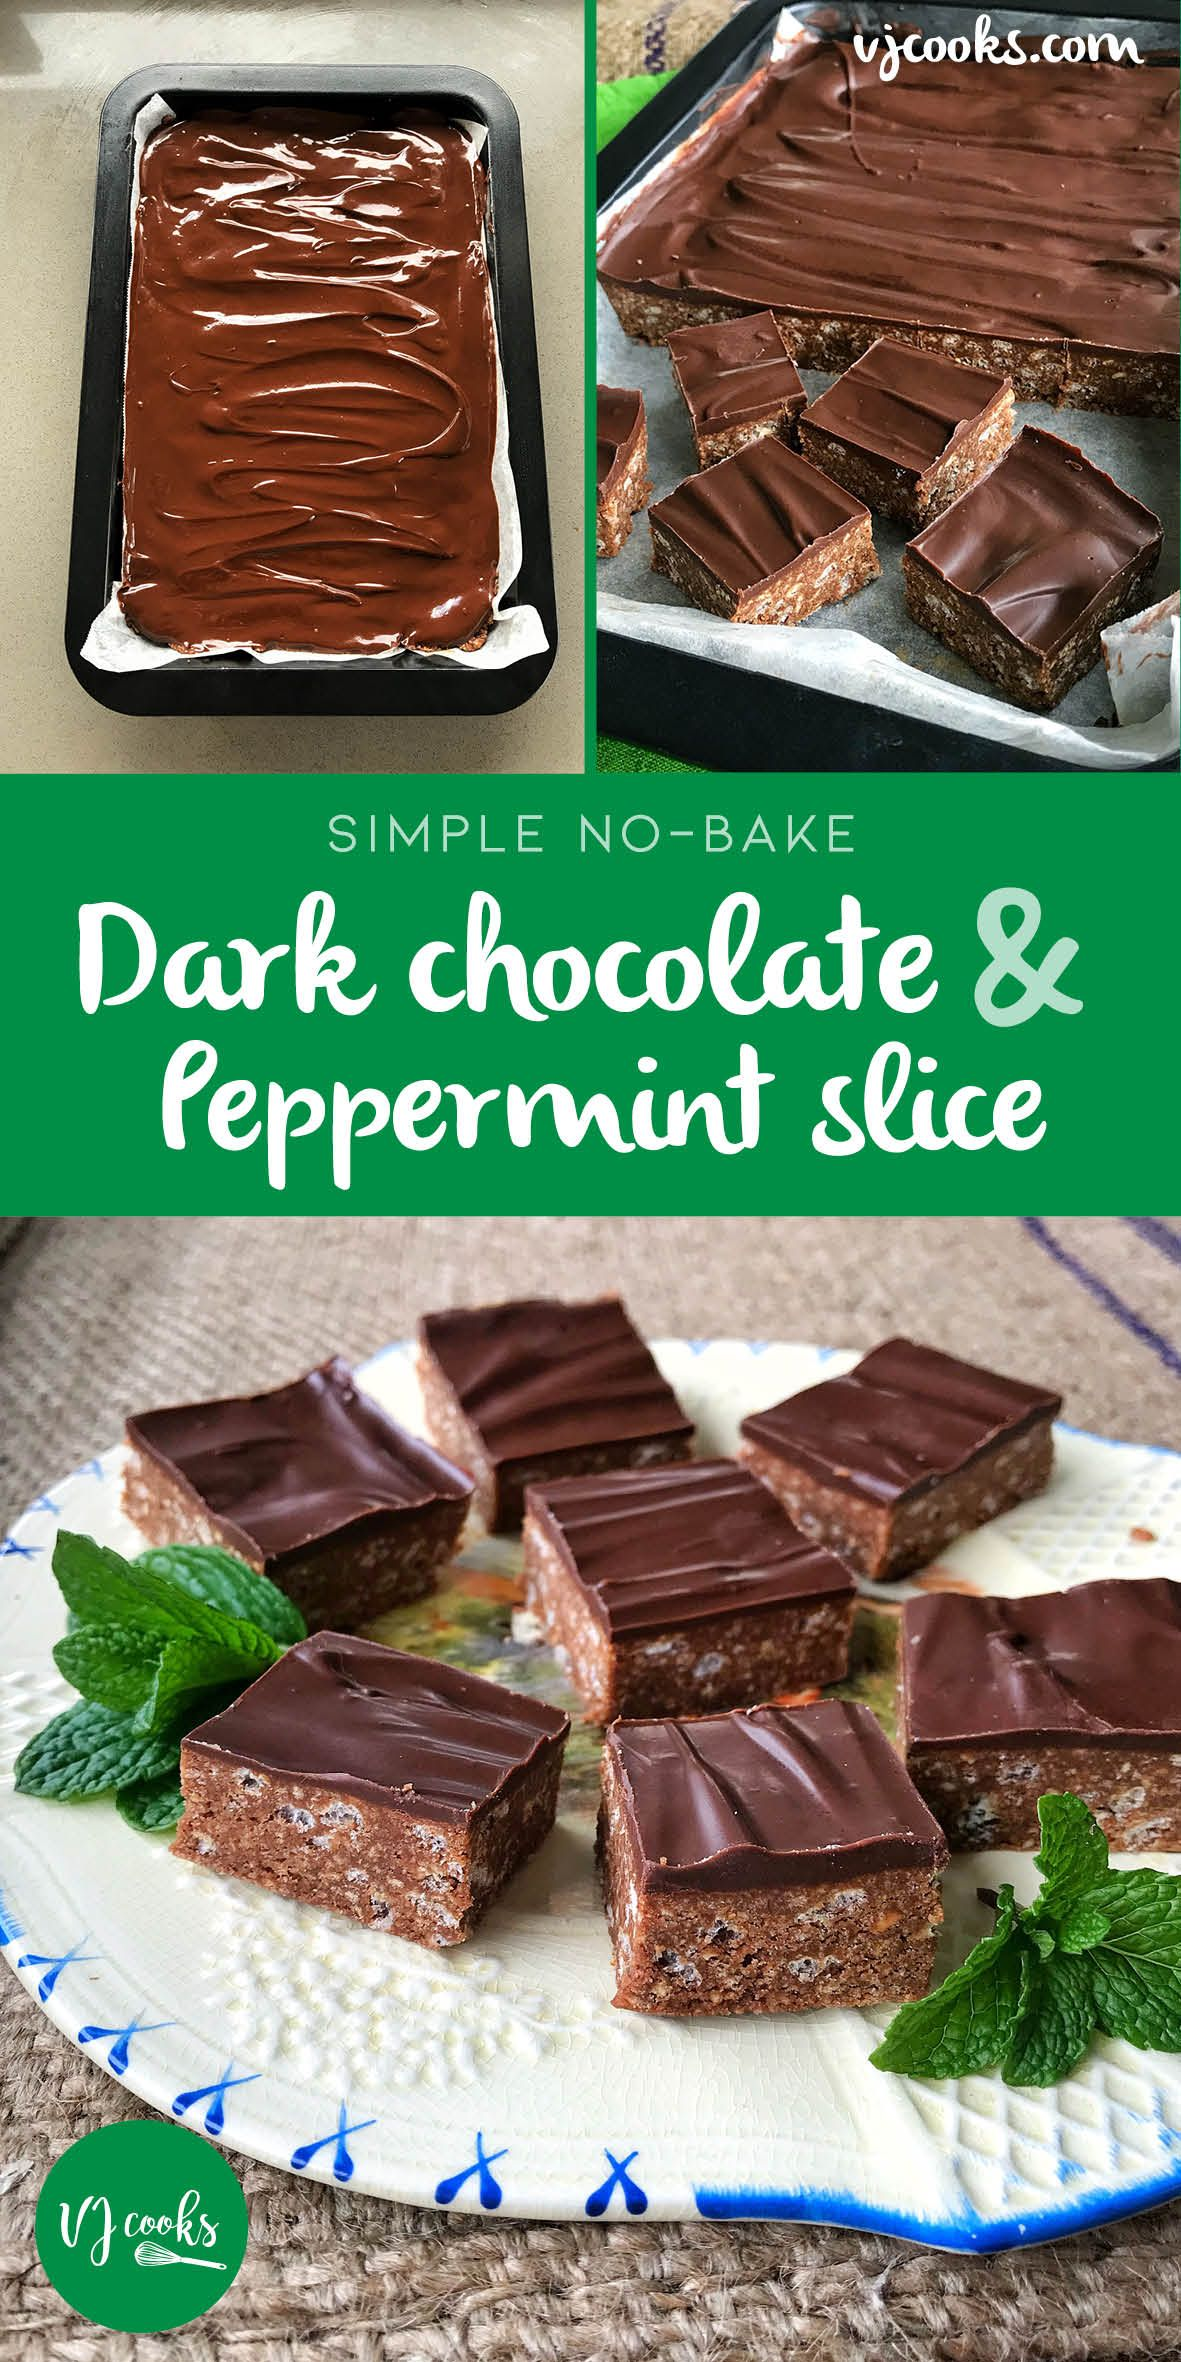 Quick And Easy No Bake Dark Chocolate Peppermint Slice By Vj Cooks Recipe Peppermint Recipes Peppermint Slice Slices Recipes